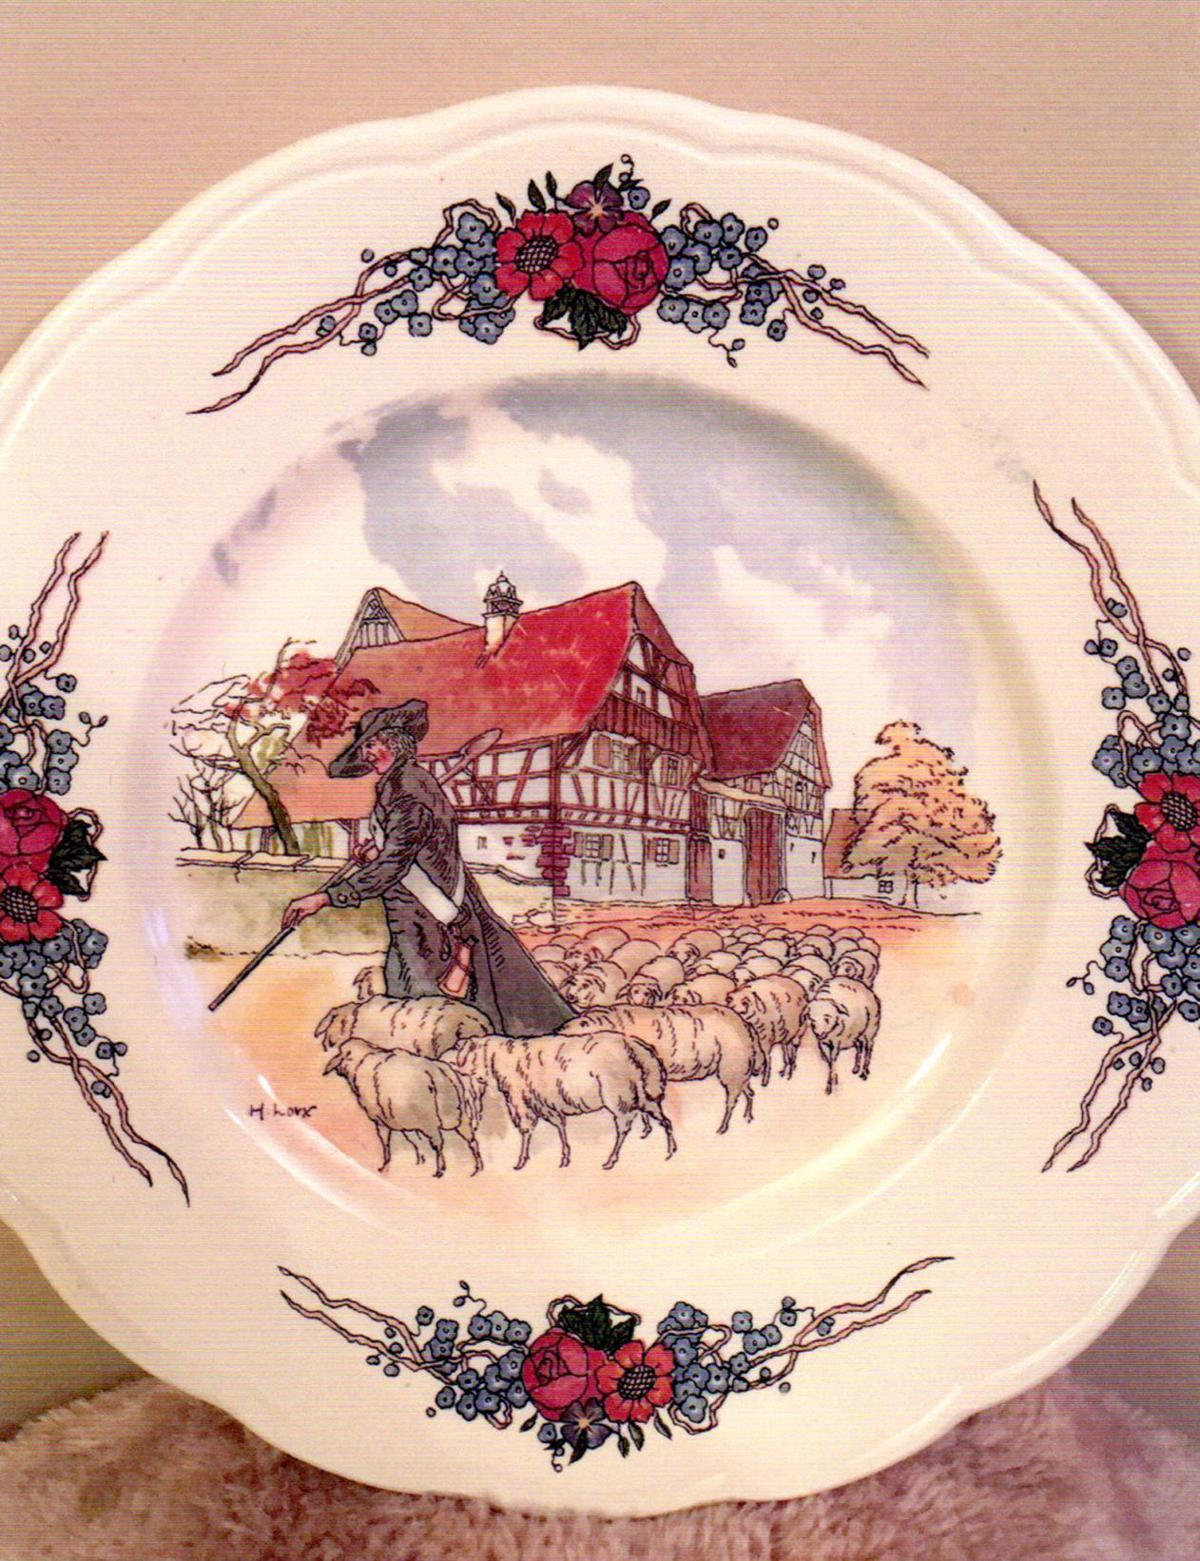 Treasures in Your Attic: Plates have an Obernai pattern, one of a French company's most popular